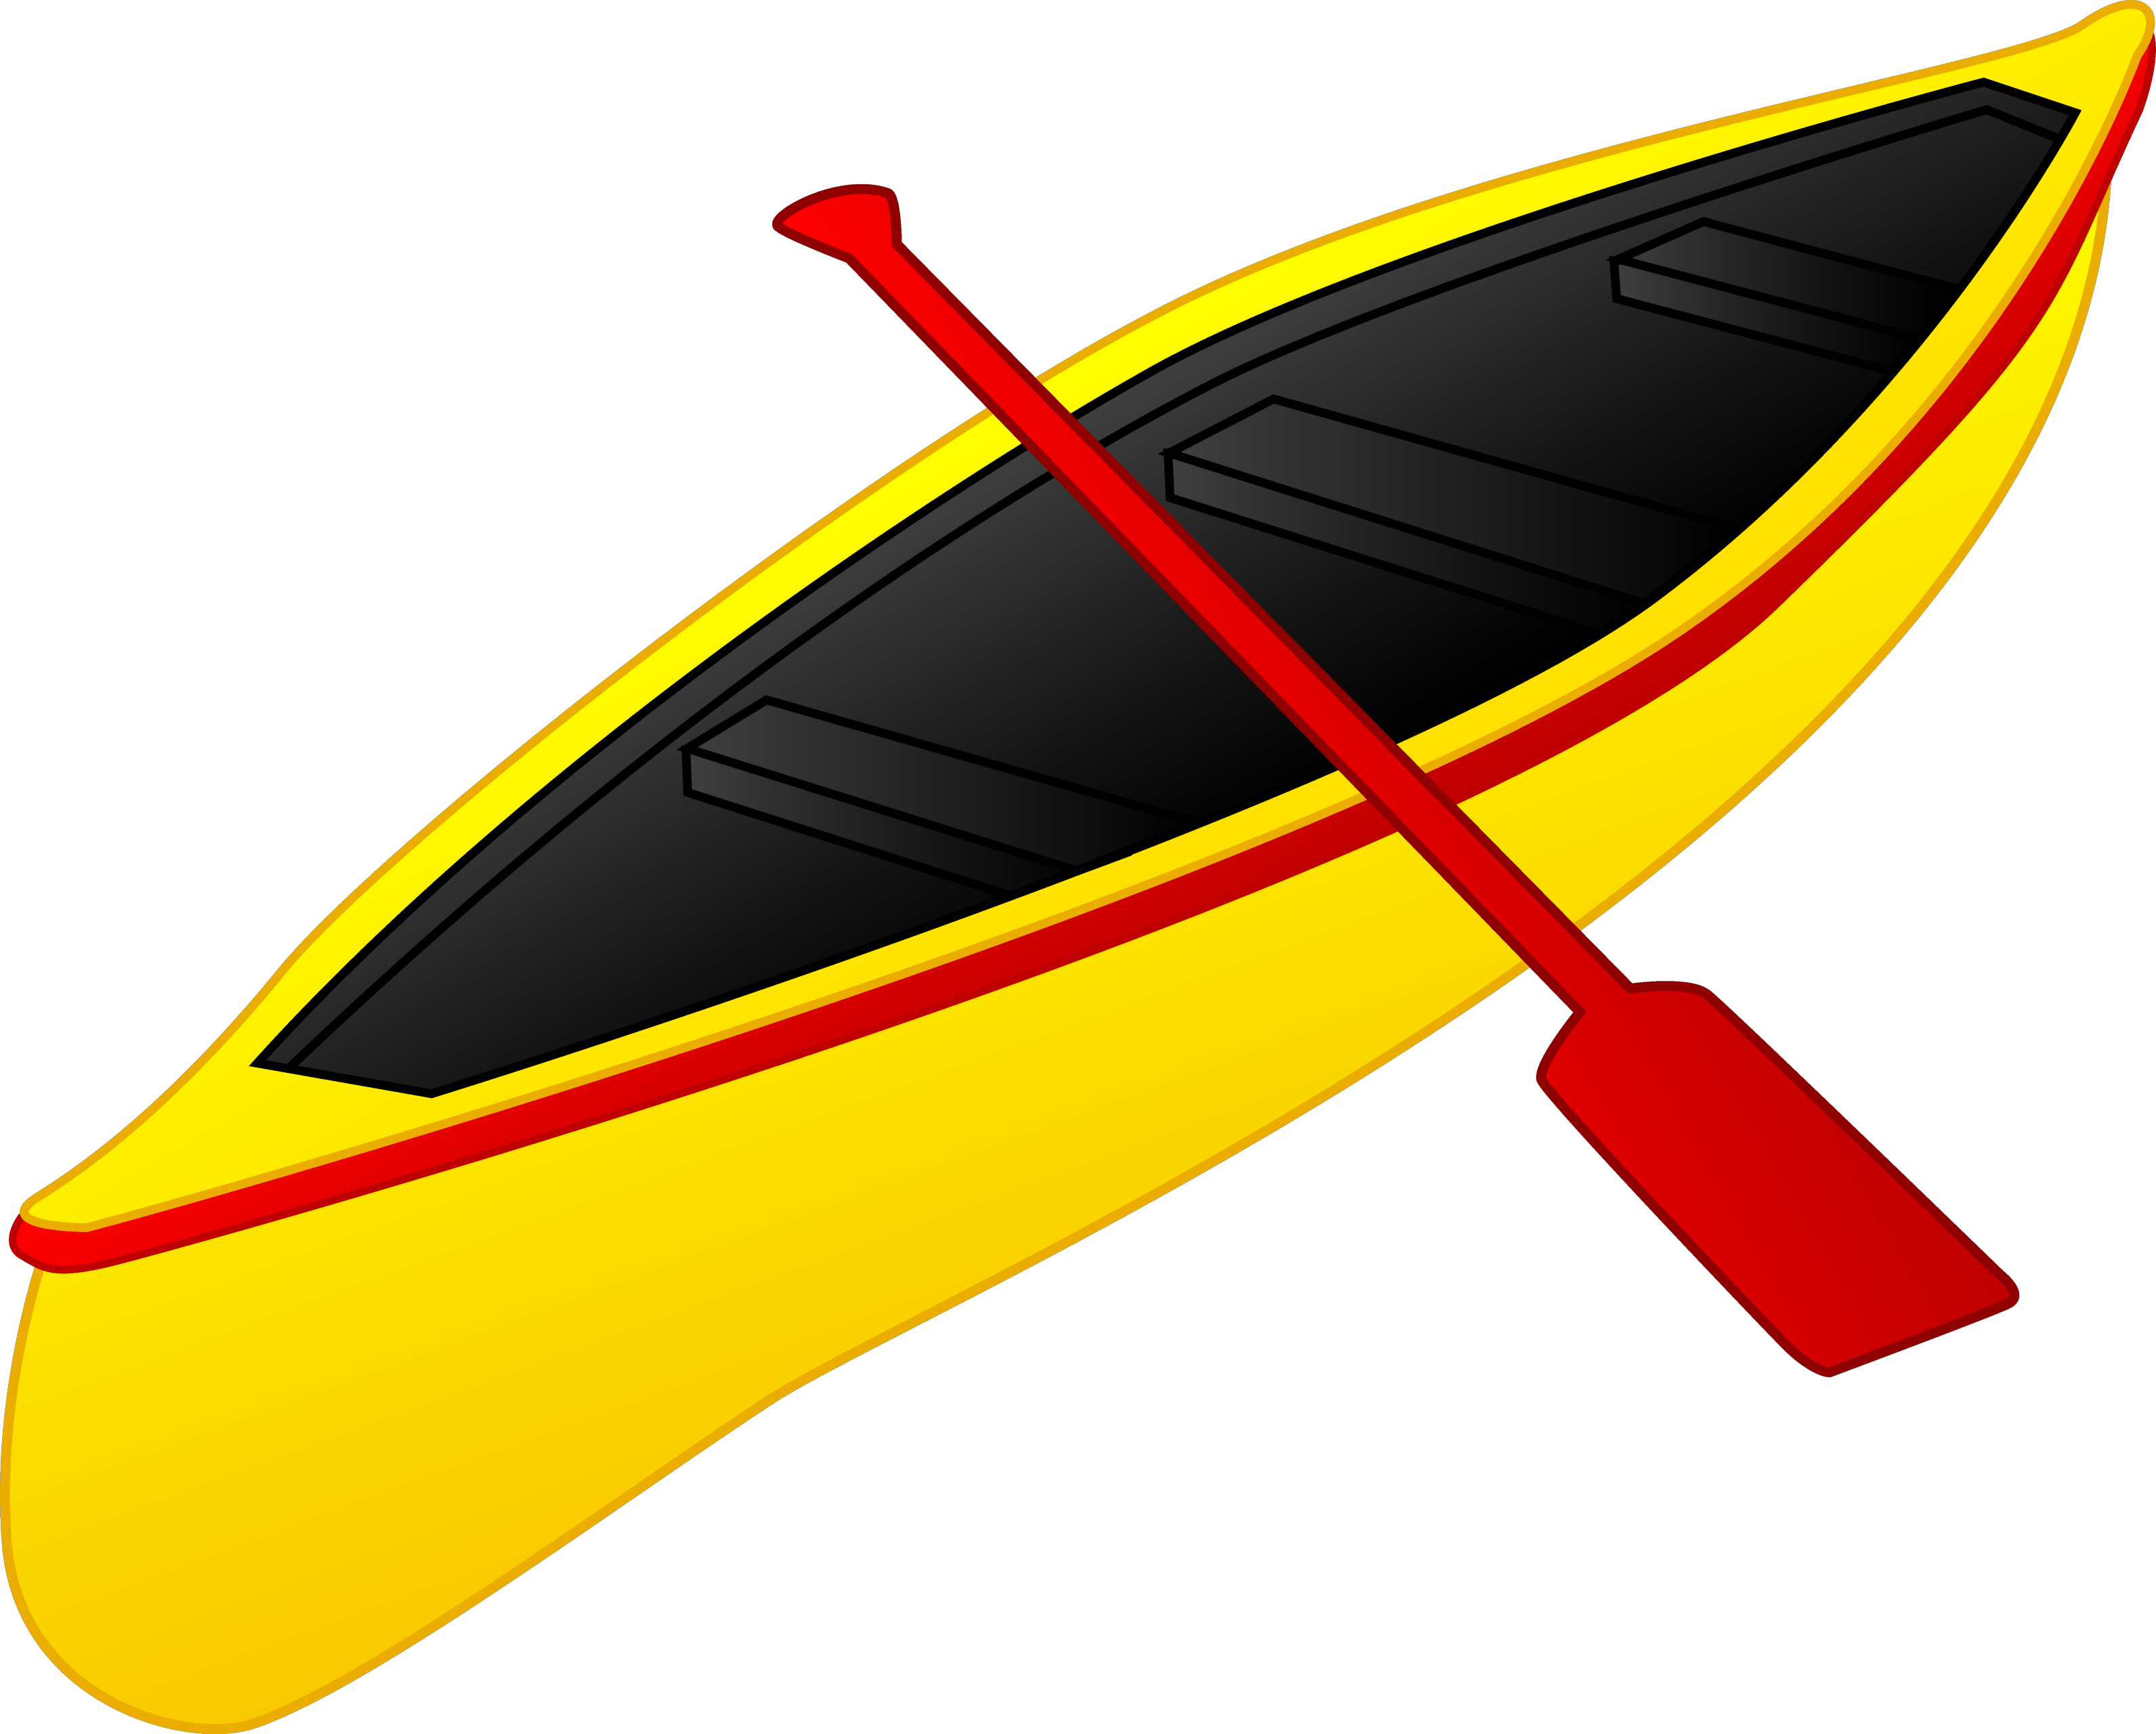 image black and white stock Kayaking clipart paddle boat. Kayaks canoes boats or